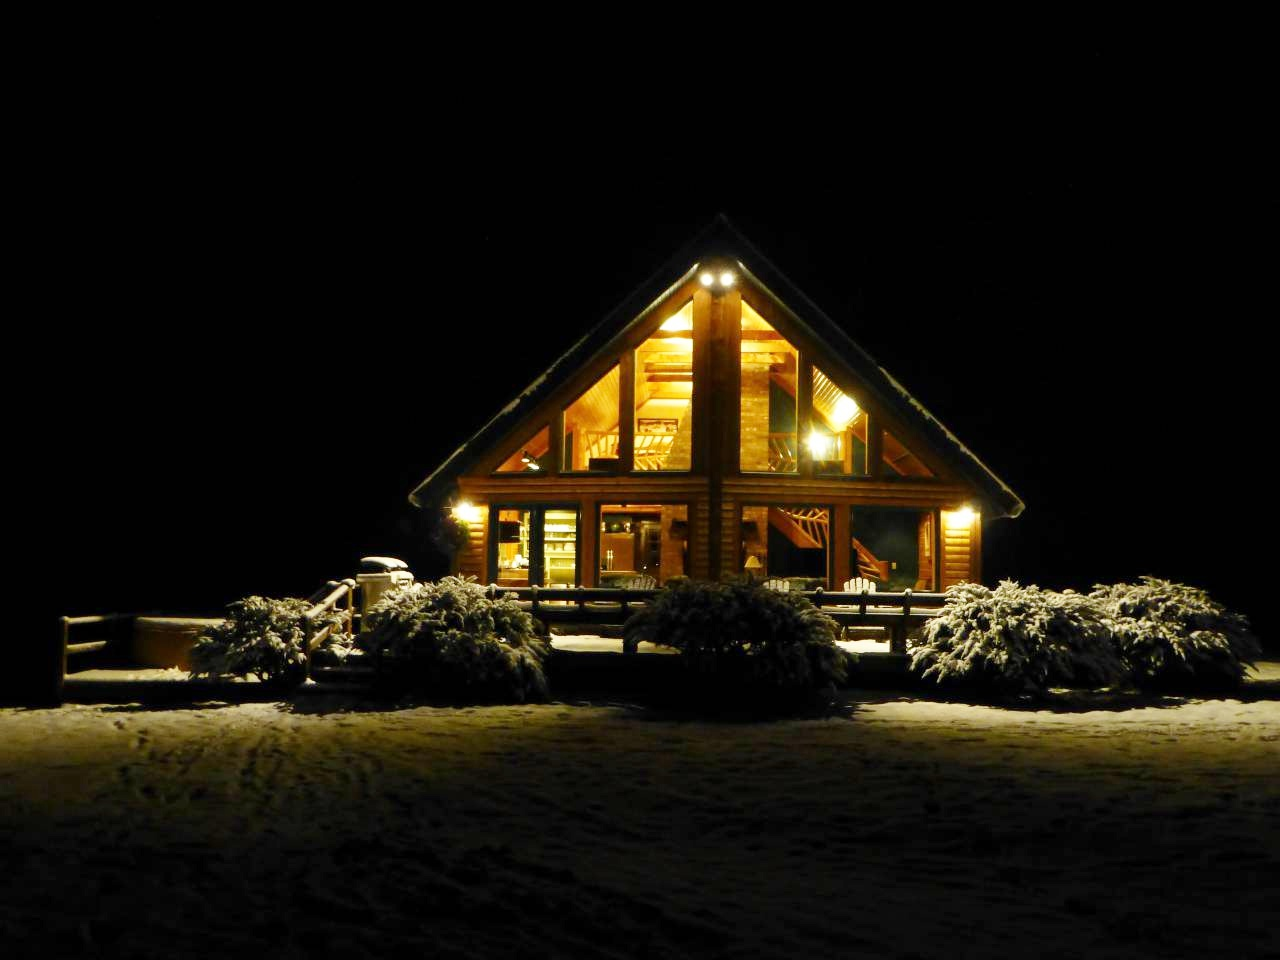 cabin alt acres hover for in cabins sheady vermont montgomery caption image jay rental peak resort irish rent